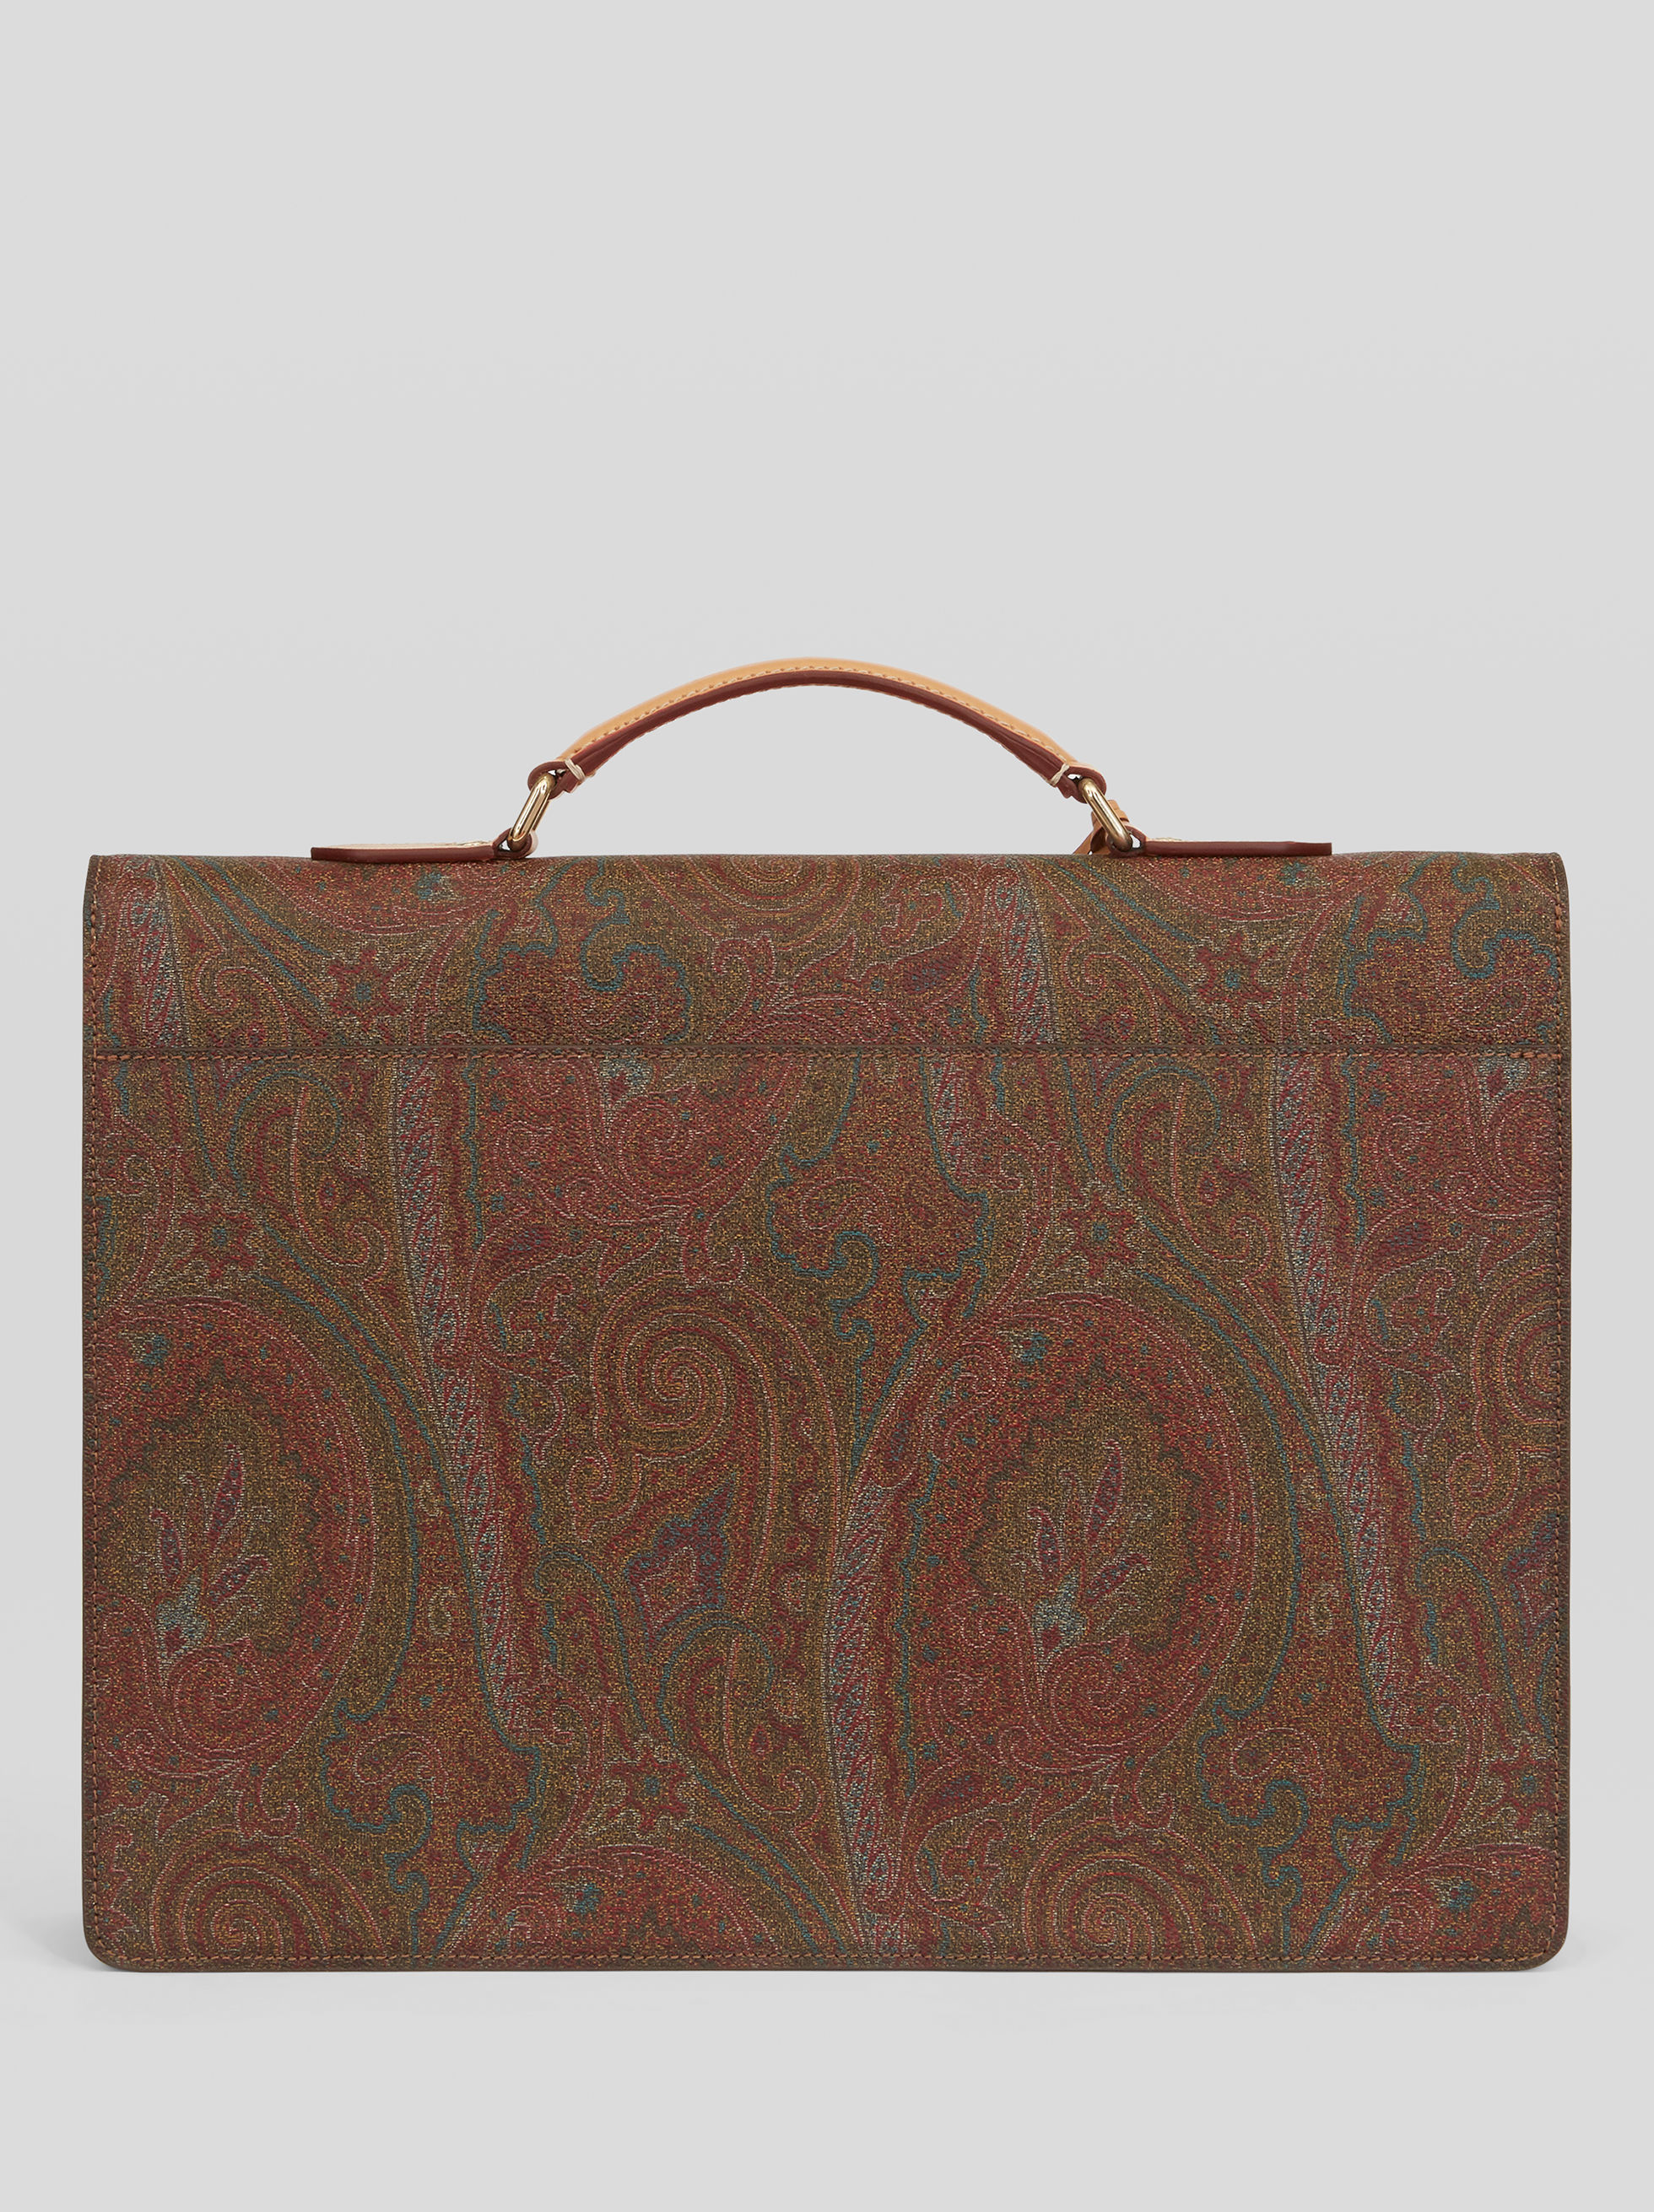 WORK BAG WITH PAISLEY PATTERNS